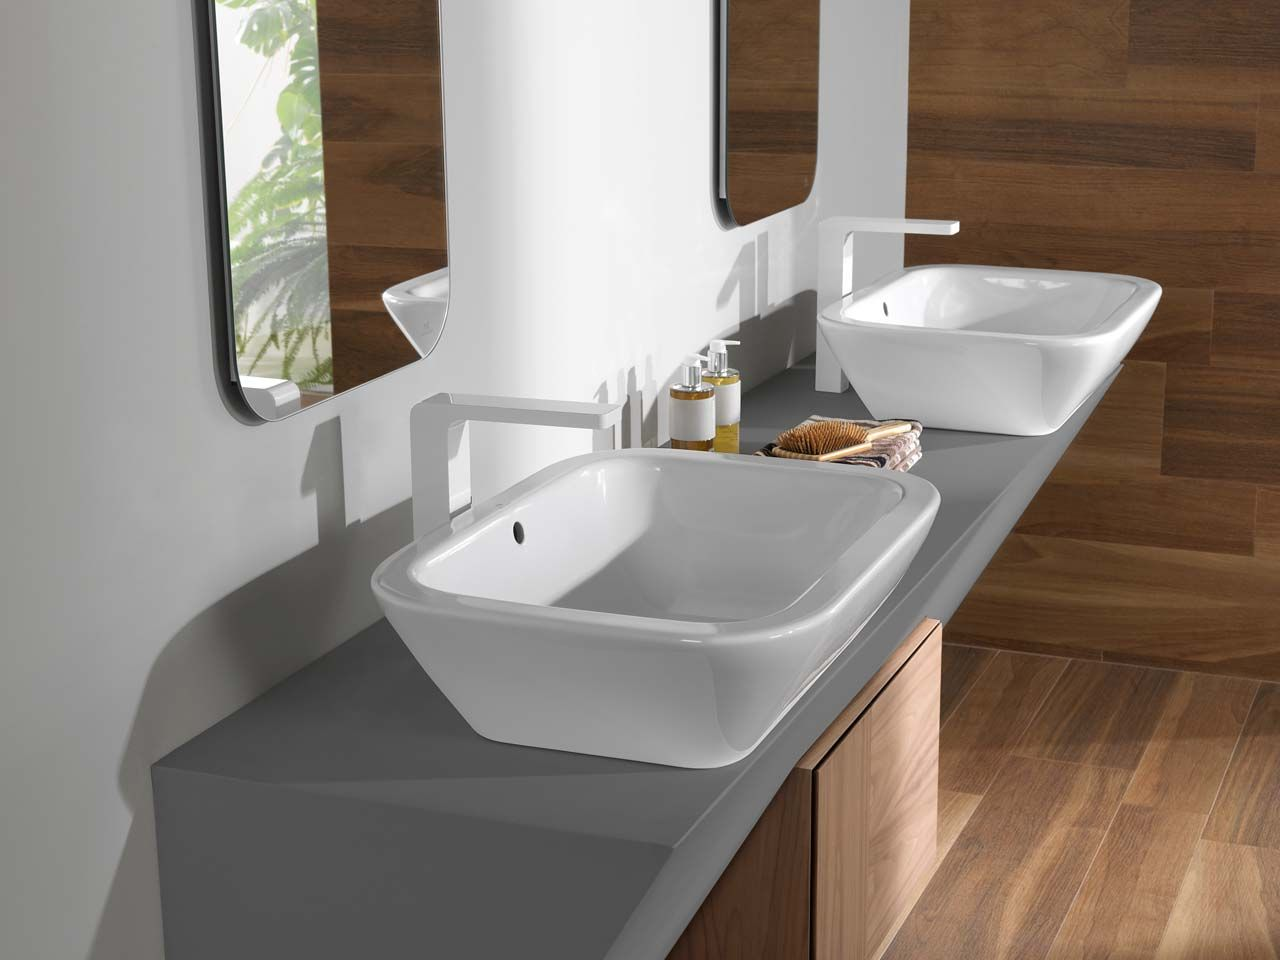 Lavabo Acro Compact.Pin On Lavabos Washbasin